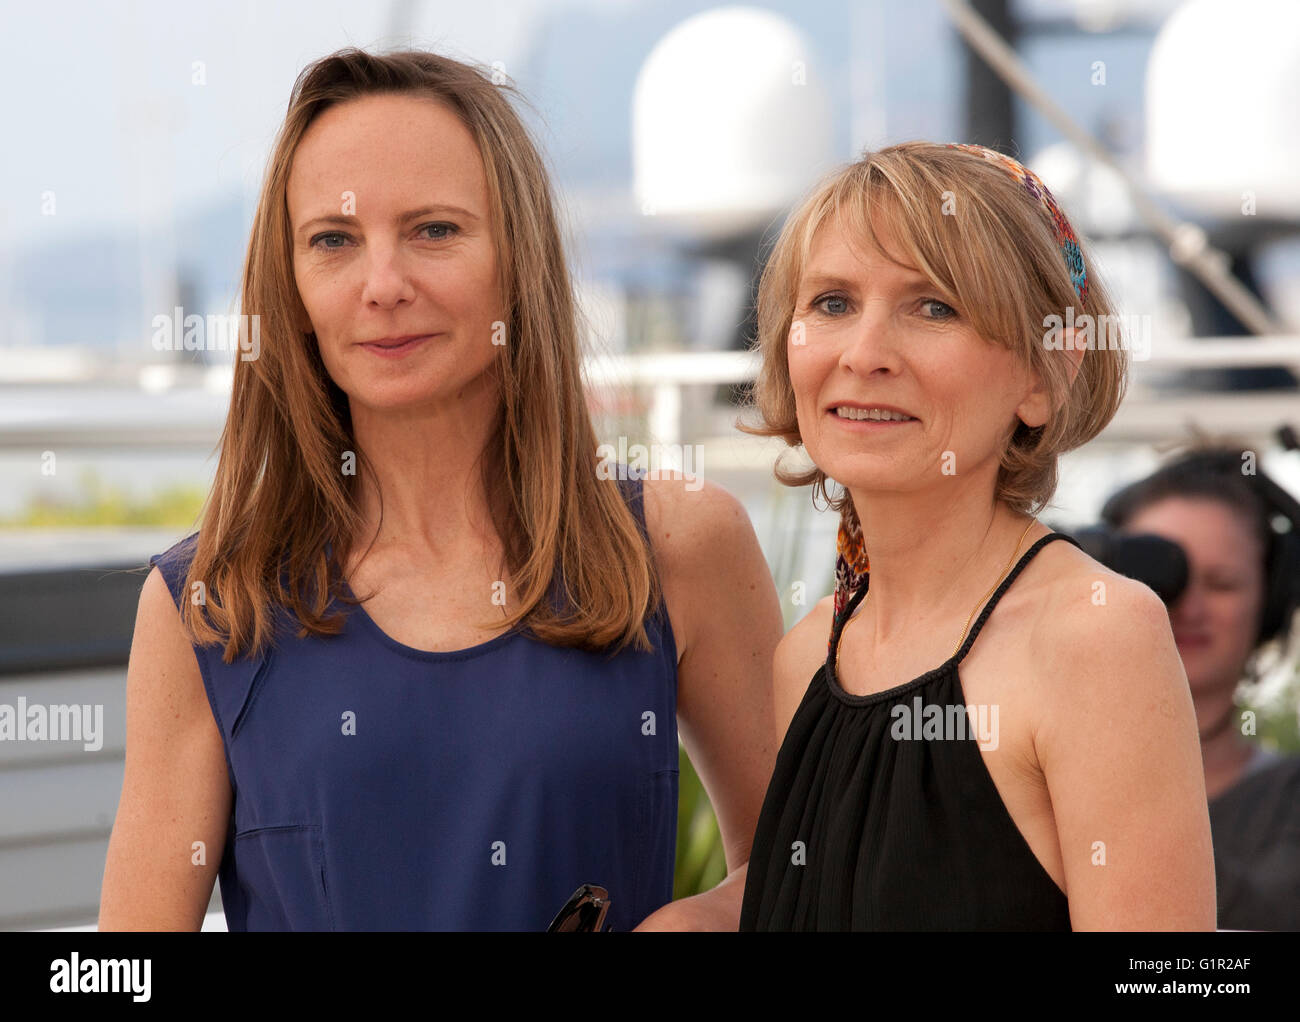 Directors Delphine Coulin and Muriel Coulin at the The Stopover (Voir Du Pays) film photo call at the 69th Cannes - Stock Image